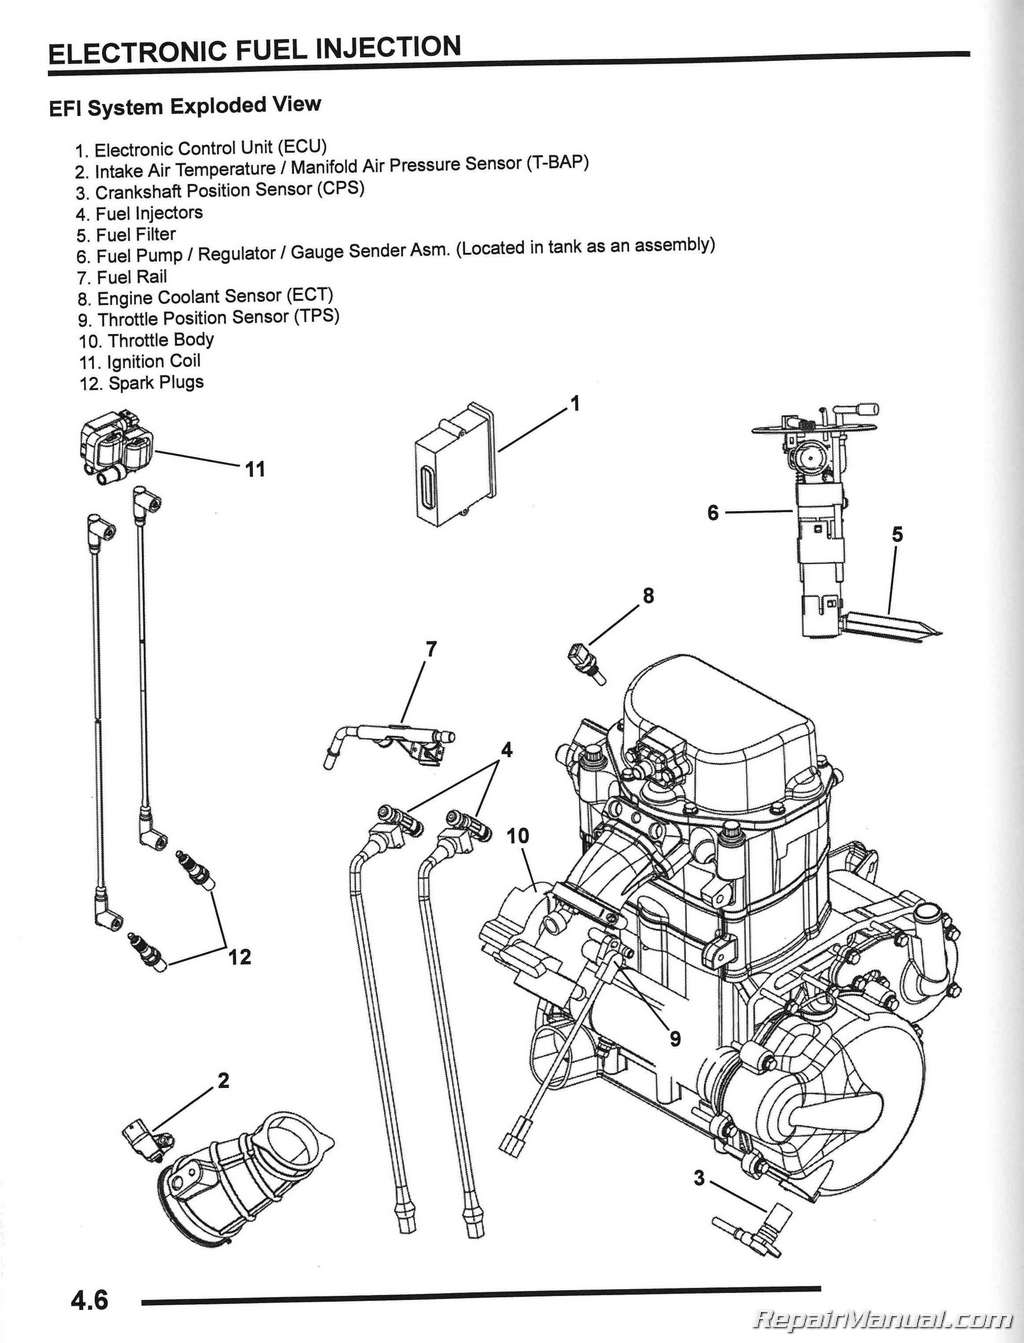 wiring harness new technology with 1995 240sx Wiring Diagram Cooling System on Chemical Engineering Colleges as well 2013 Toyota Camry Engine  partment Diagram likewise Mercedes S Parts Auto Online Catalog together with Freightliner Truck Axle Diagram Html likewise 1995 240sx Wiring Diagram Cooling System.